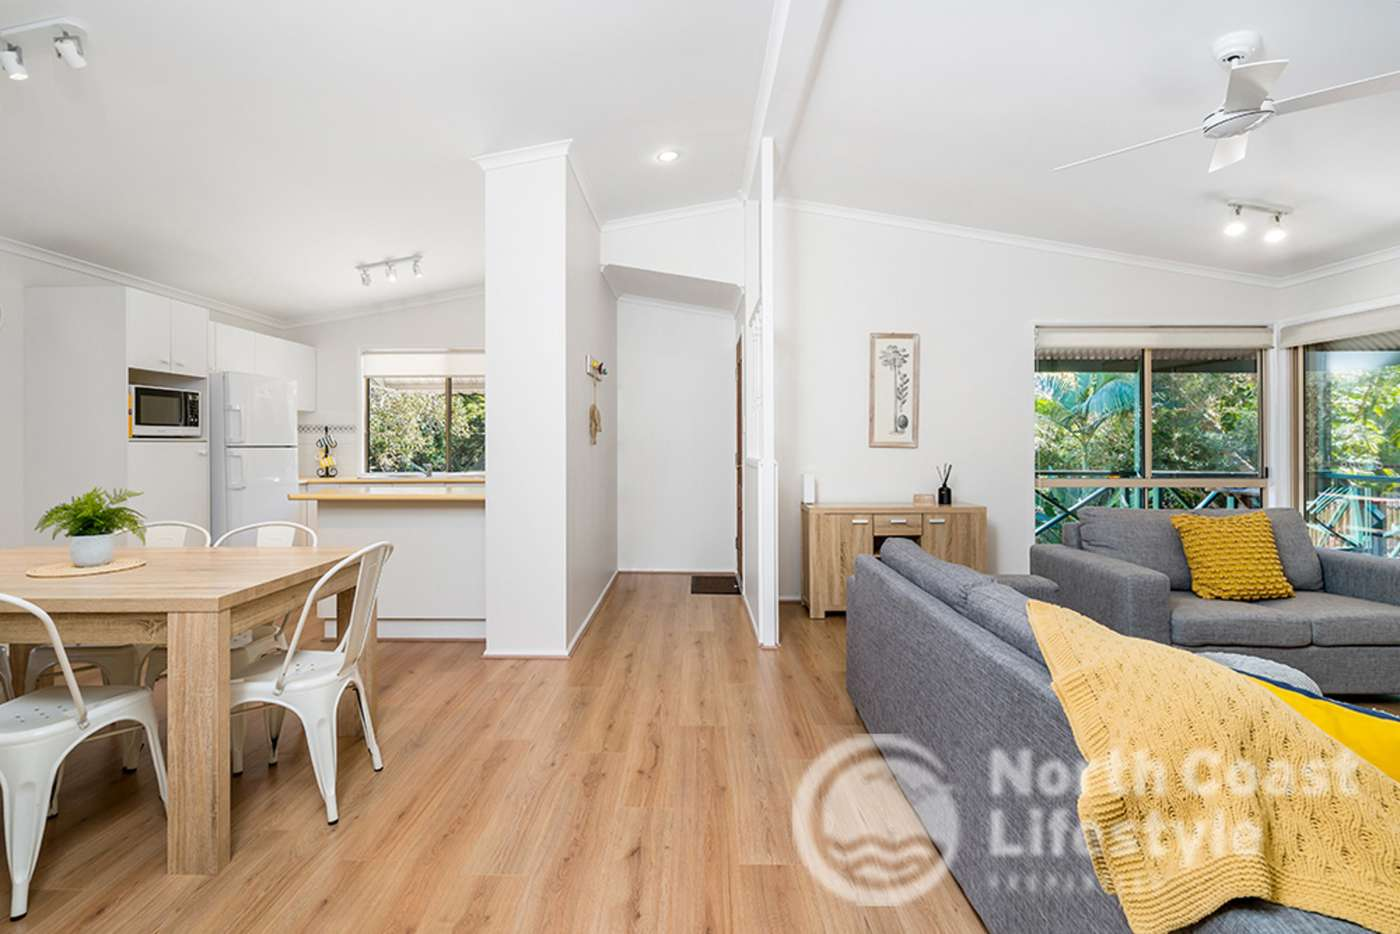 Fifth view of Homely house listing, 11 Royal Avenue, South Golden Beach NSW 2483